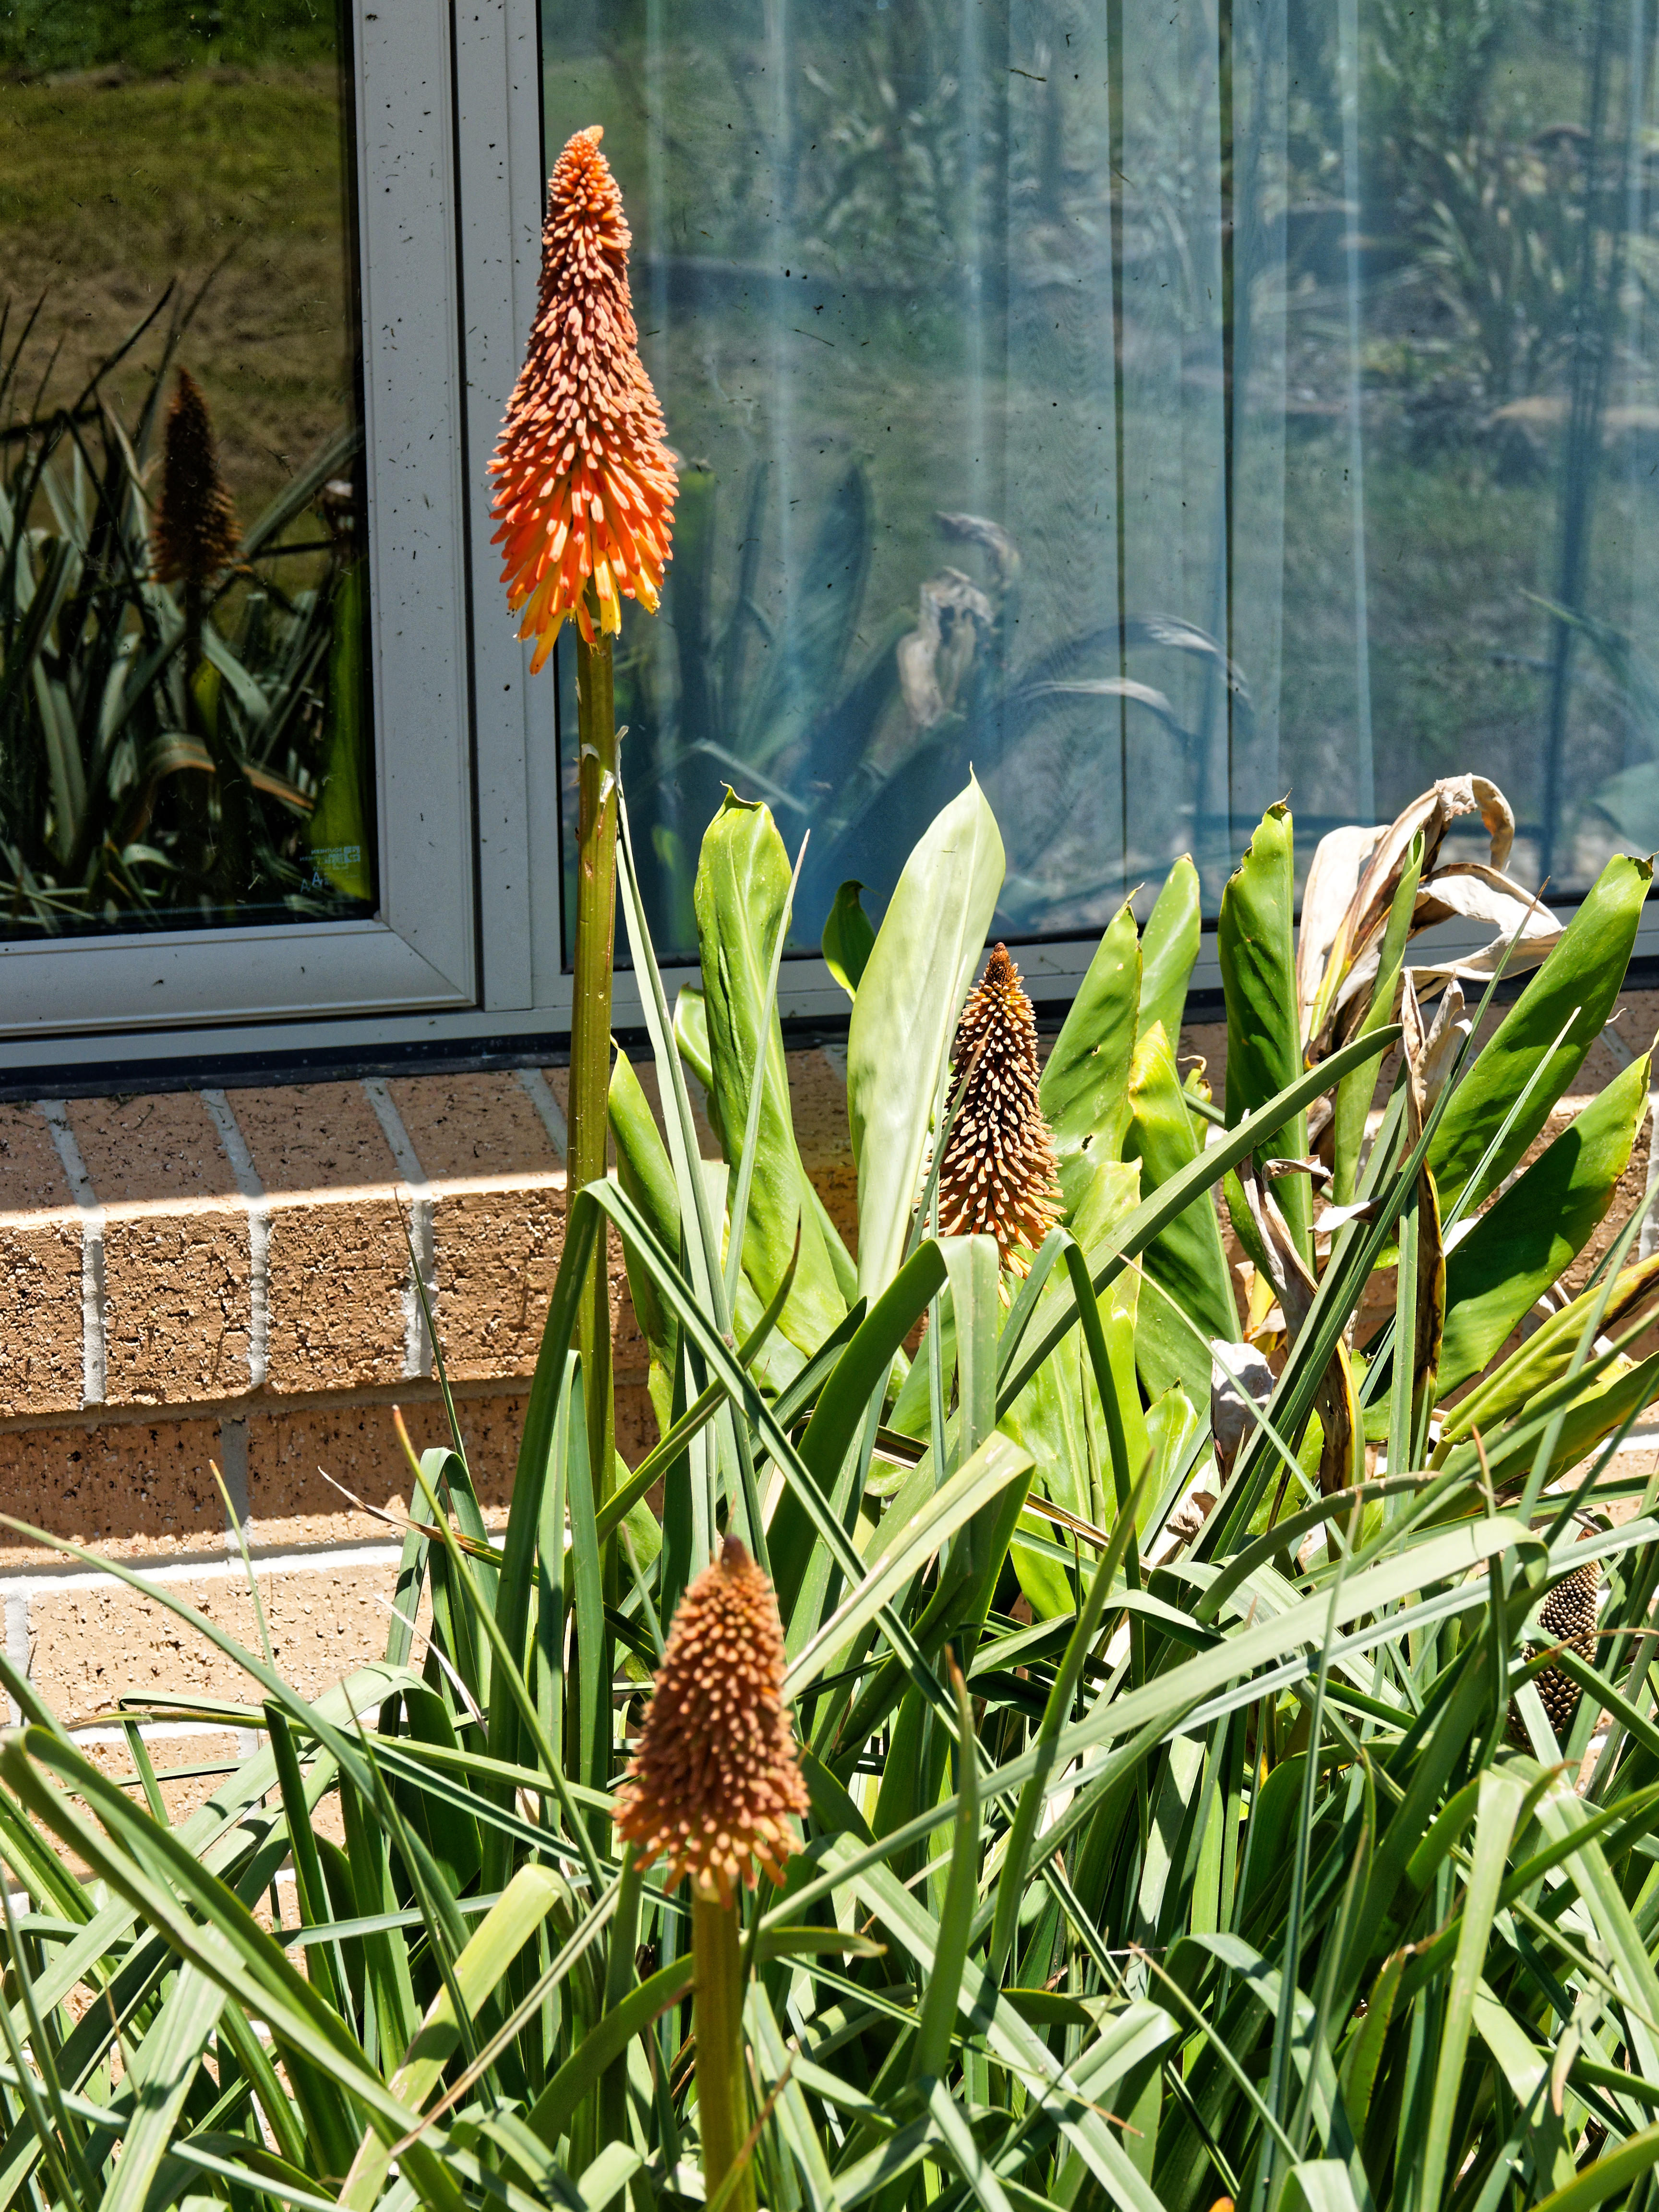 This should be Kniphofia-2.jpeg.  Is it missing?